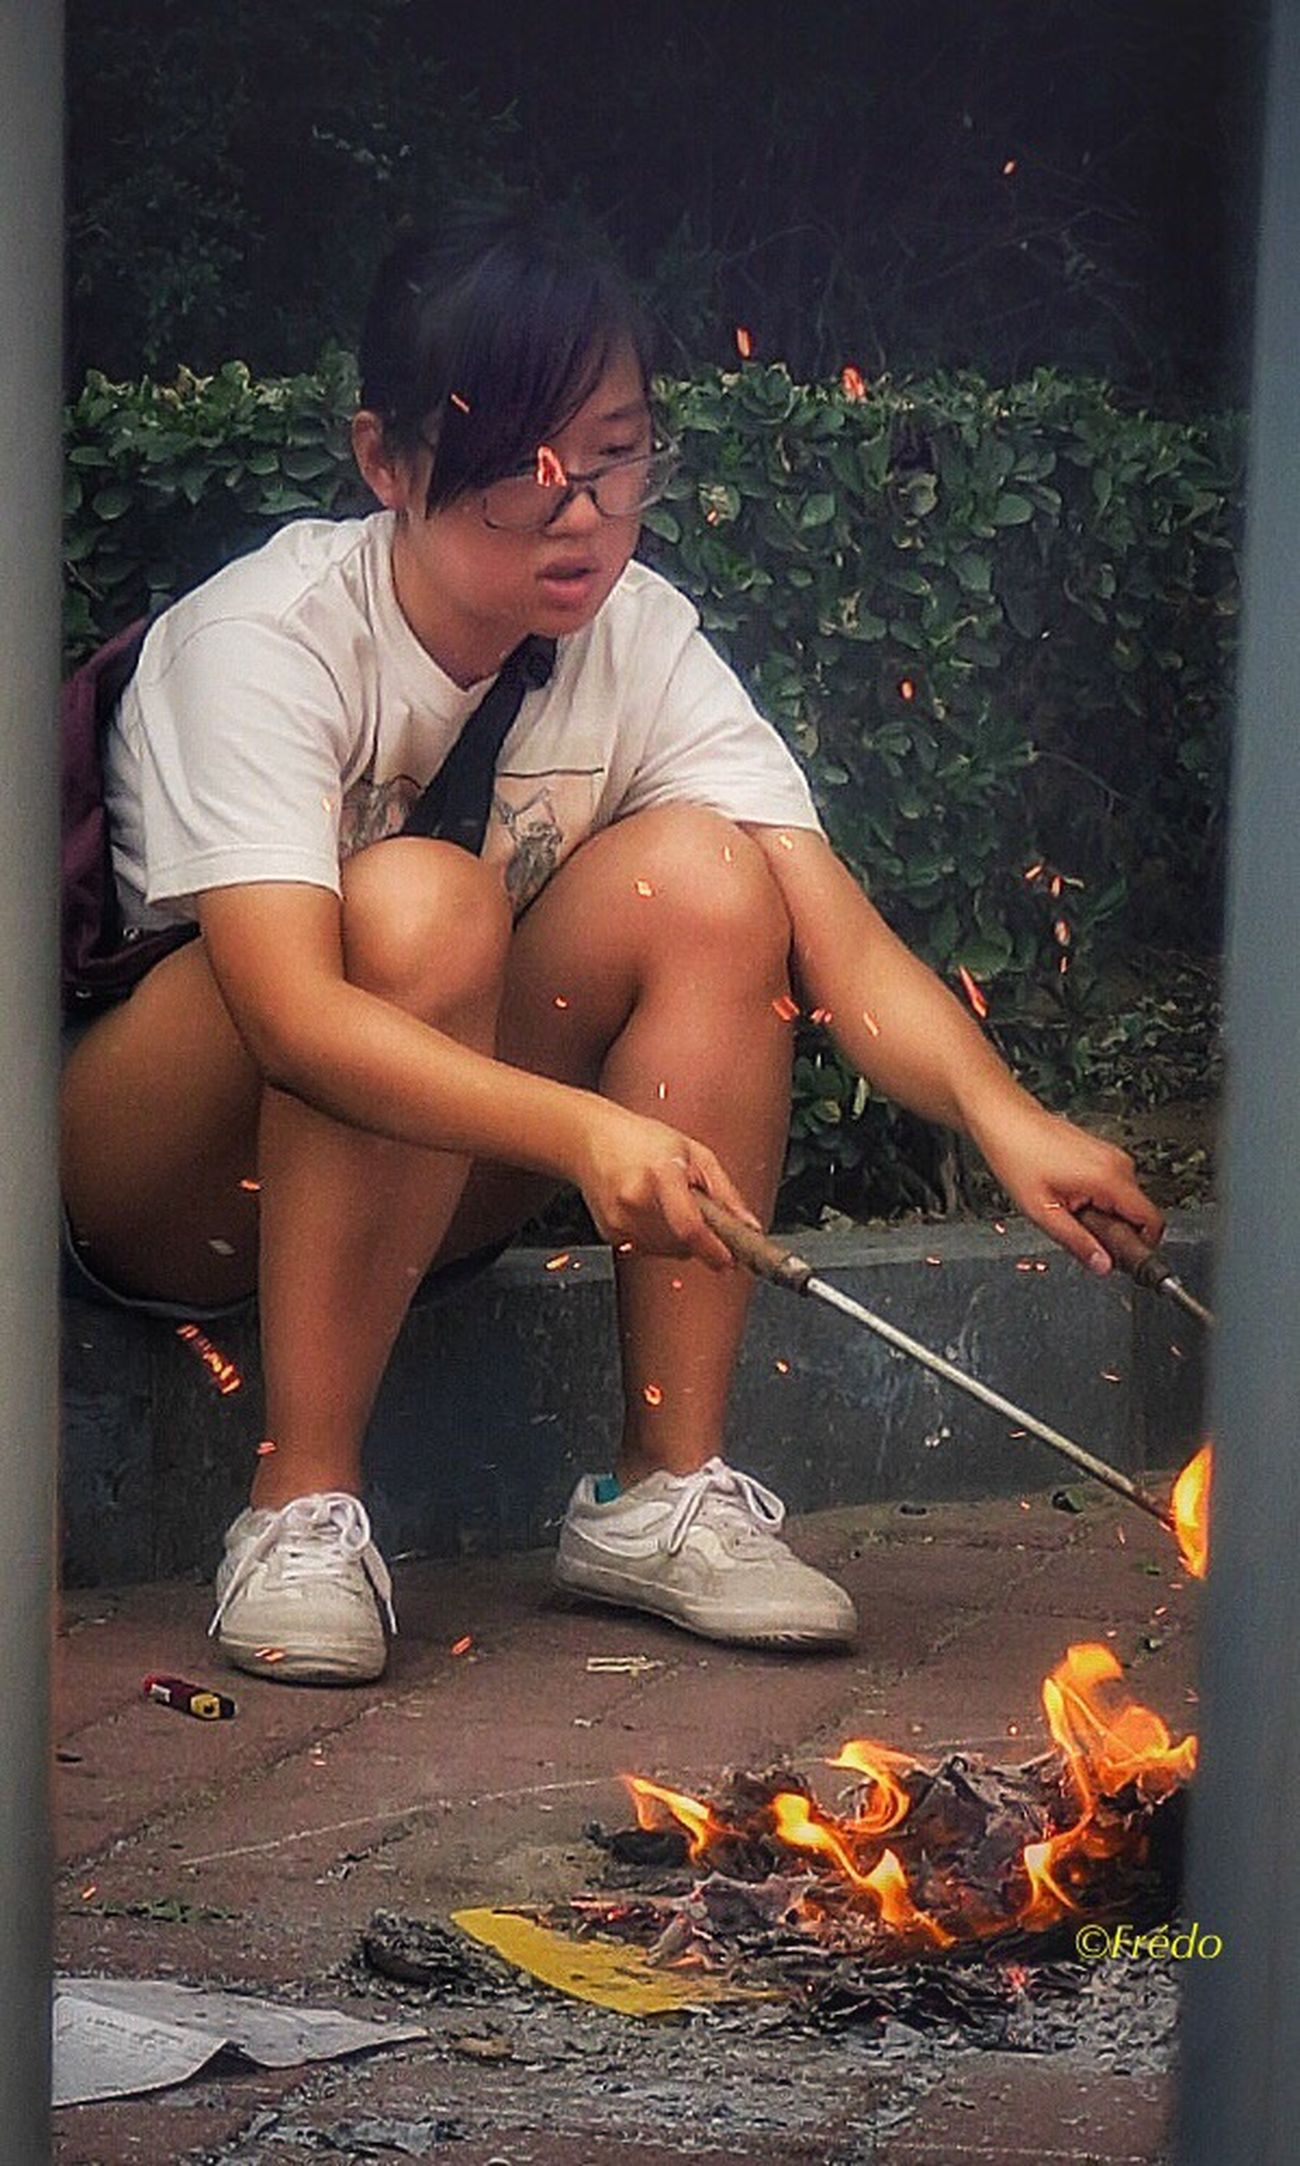 Hommage aux pères disparus/fathersday/Fête des pères/Beijing Sitting One Person Only Women People One Woman Only Young Adult Beijing, China Street Photos😄📷🏫⛪🚒🚐🚲⚠ The Portraitist - 2017 EyeEm Awards The Street Photographer - 2017 EyeEm Awards BEIJING北京CHINA中国BEAUTY BEIJING 北京 Eyeemphotography Eyem Best Shots Photooftheday Streetphotography Eyemphotography Eyem In Beijing Real People Lifestyles Respect Soul China Photos Beijing Scenes Ashes